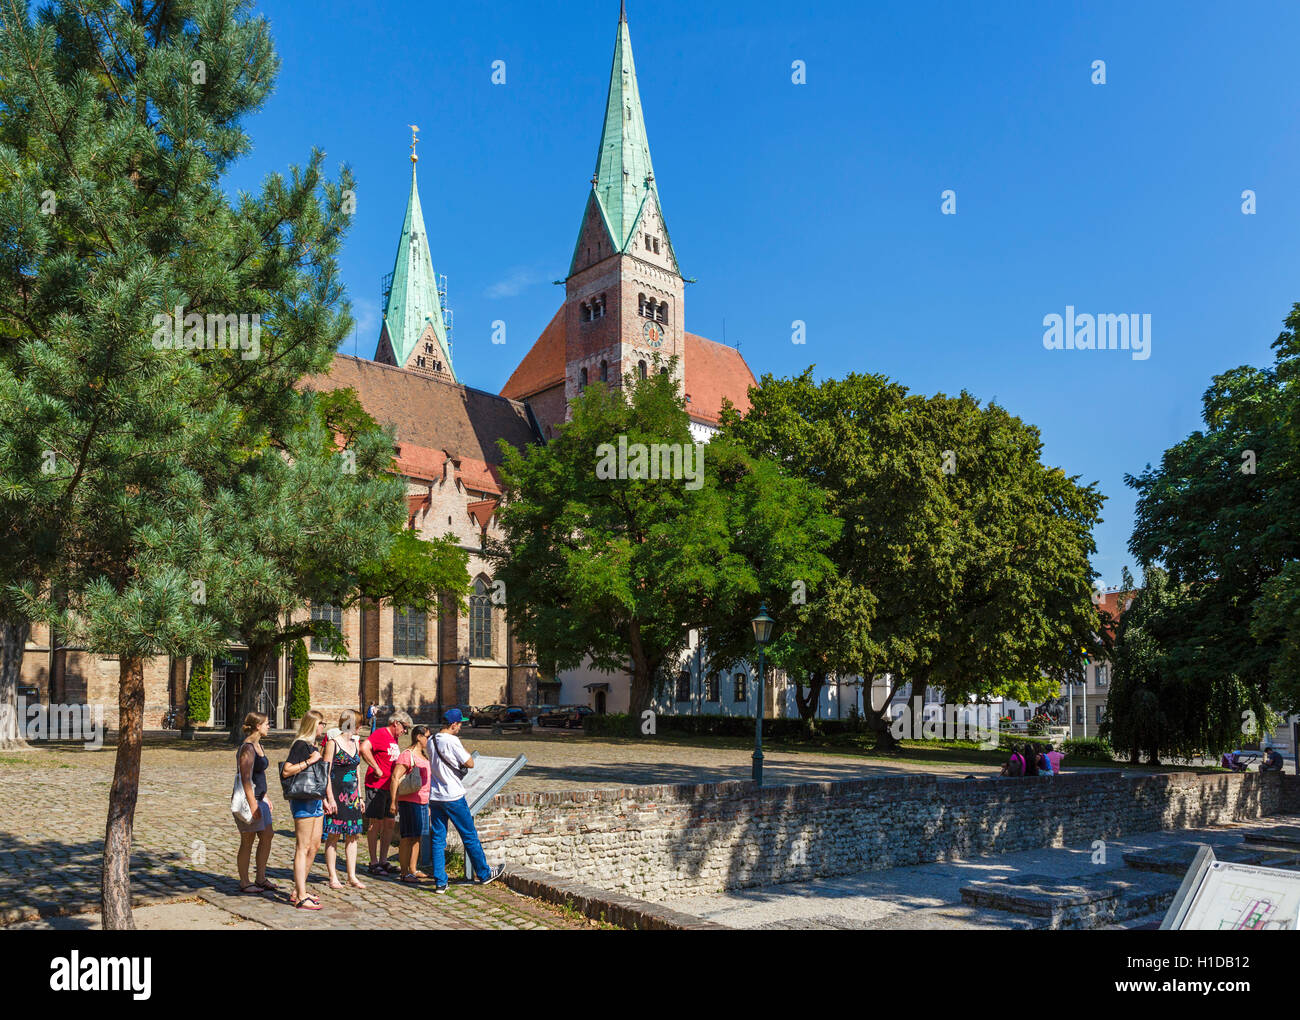 The Cathedral (Dom) in Augsburg, Bavaria, Germany - Stock Image